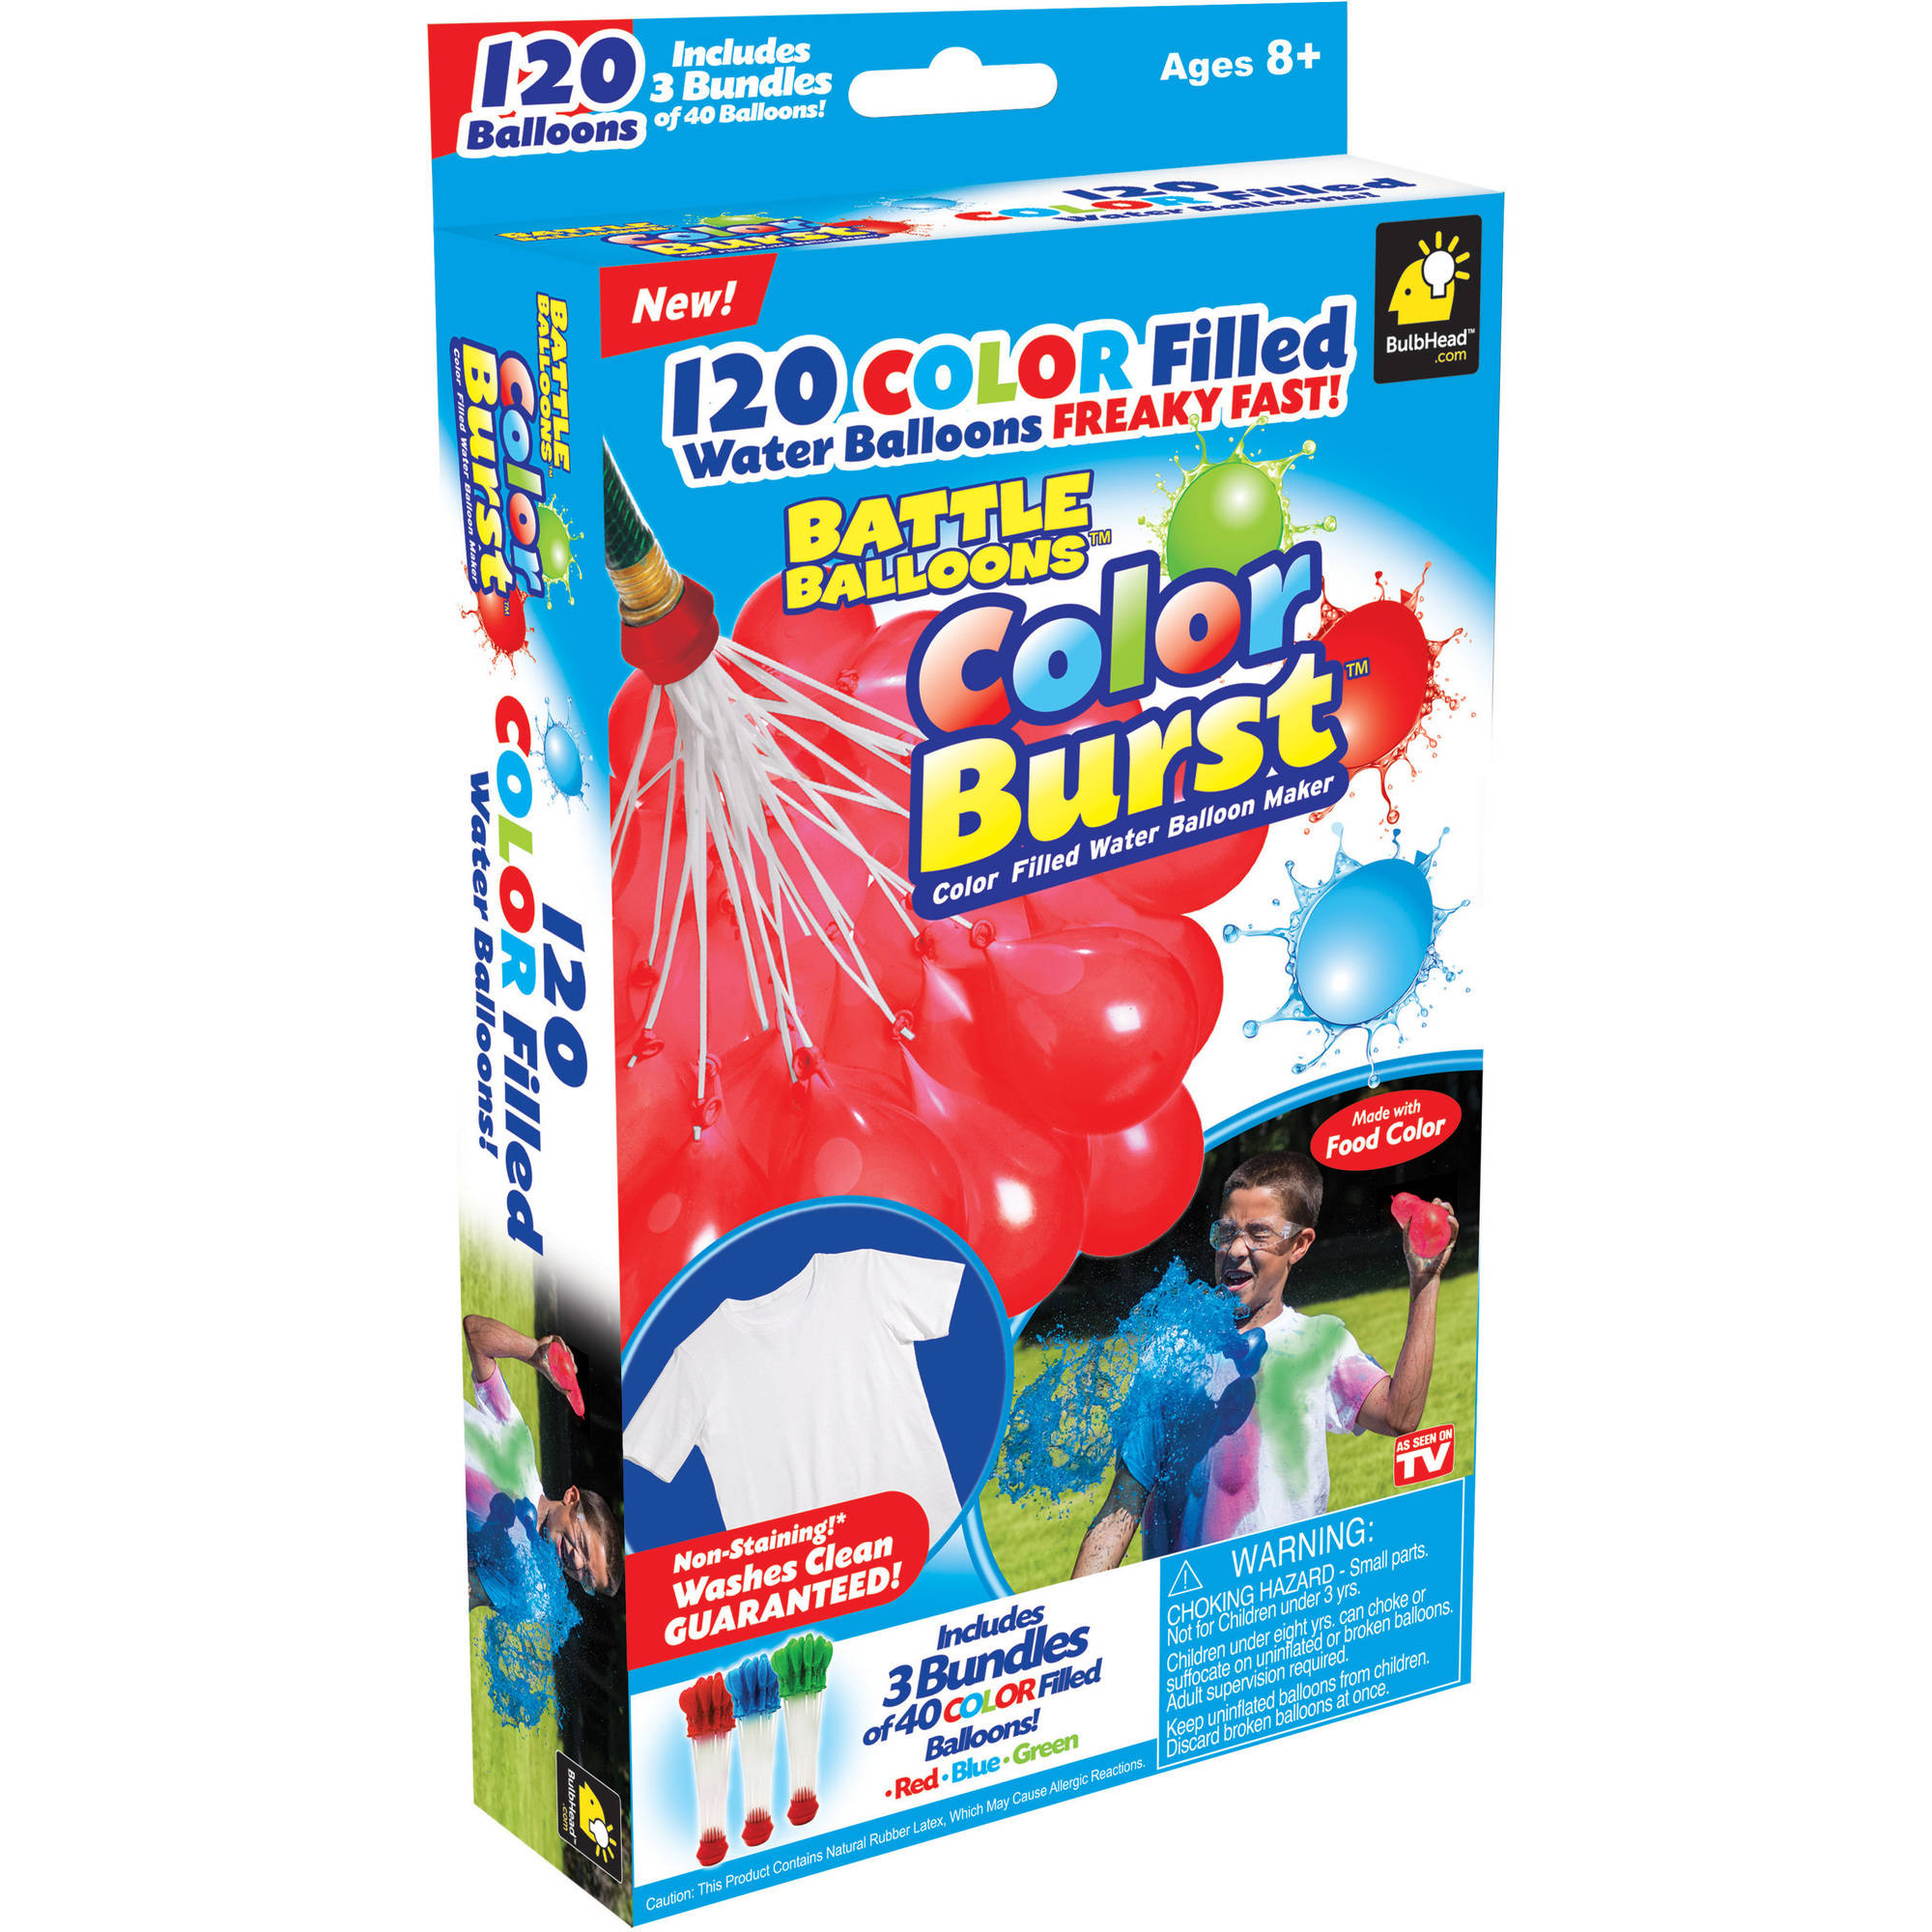 Battle Balloon Color Burst, Pack of 120